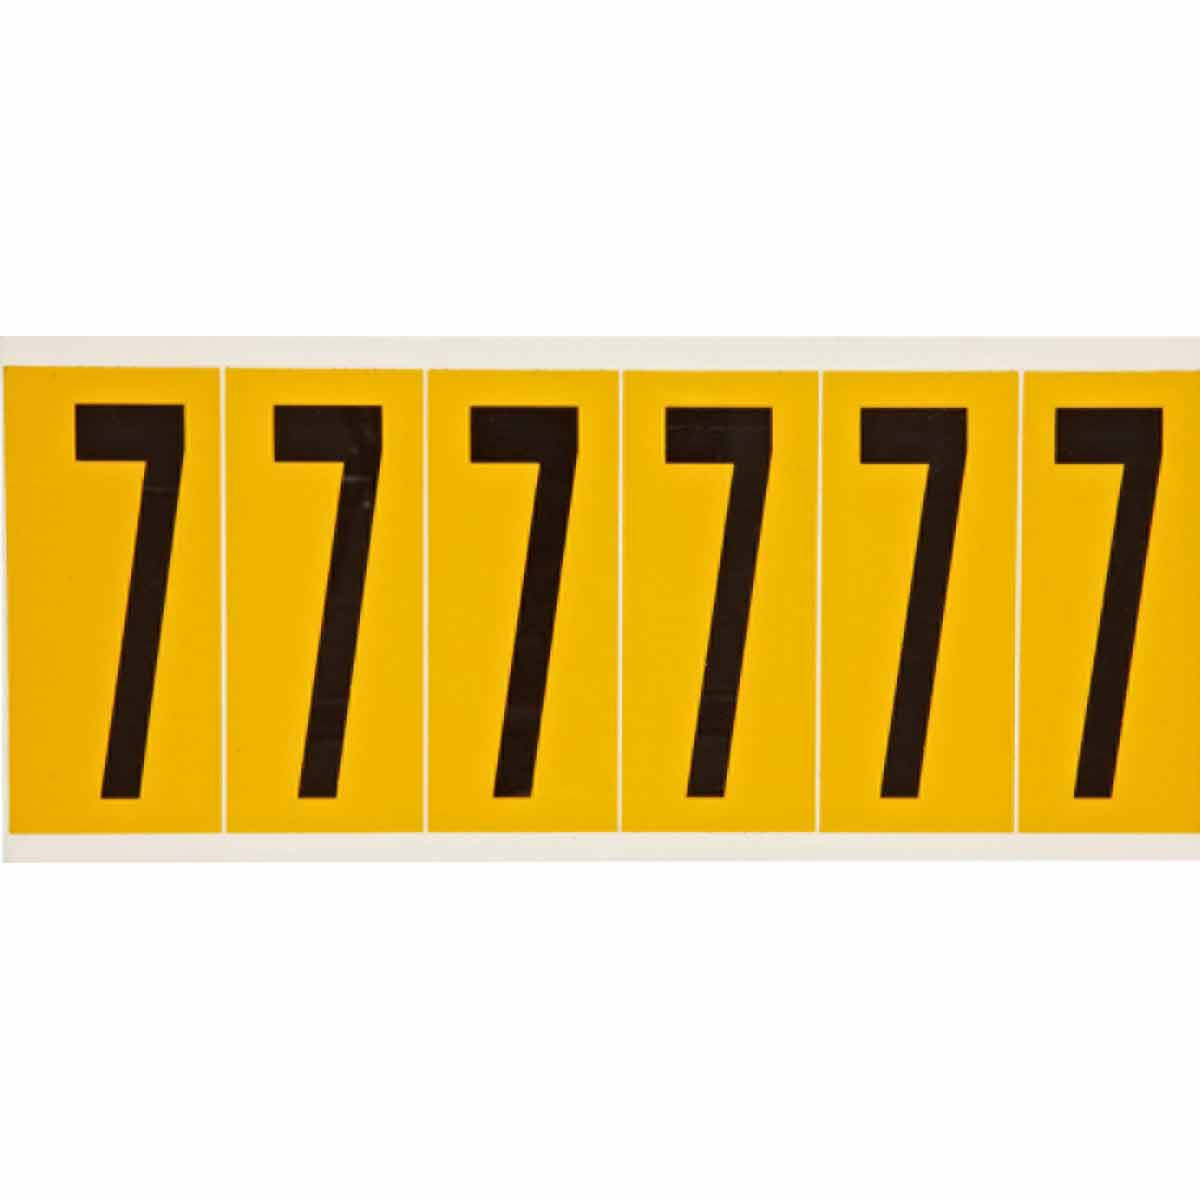 Brady® 1550-7 Non-Reflective Standard Number Label, 2.938 in H Black 7 Character, Yellow Background, B-946 Vinyl